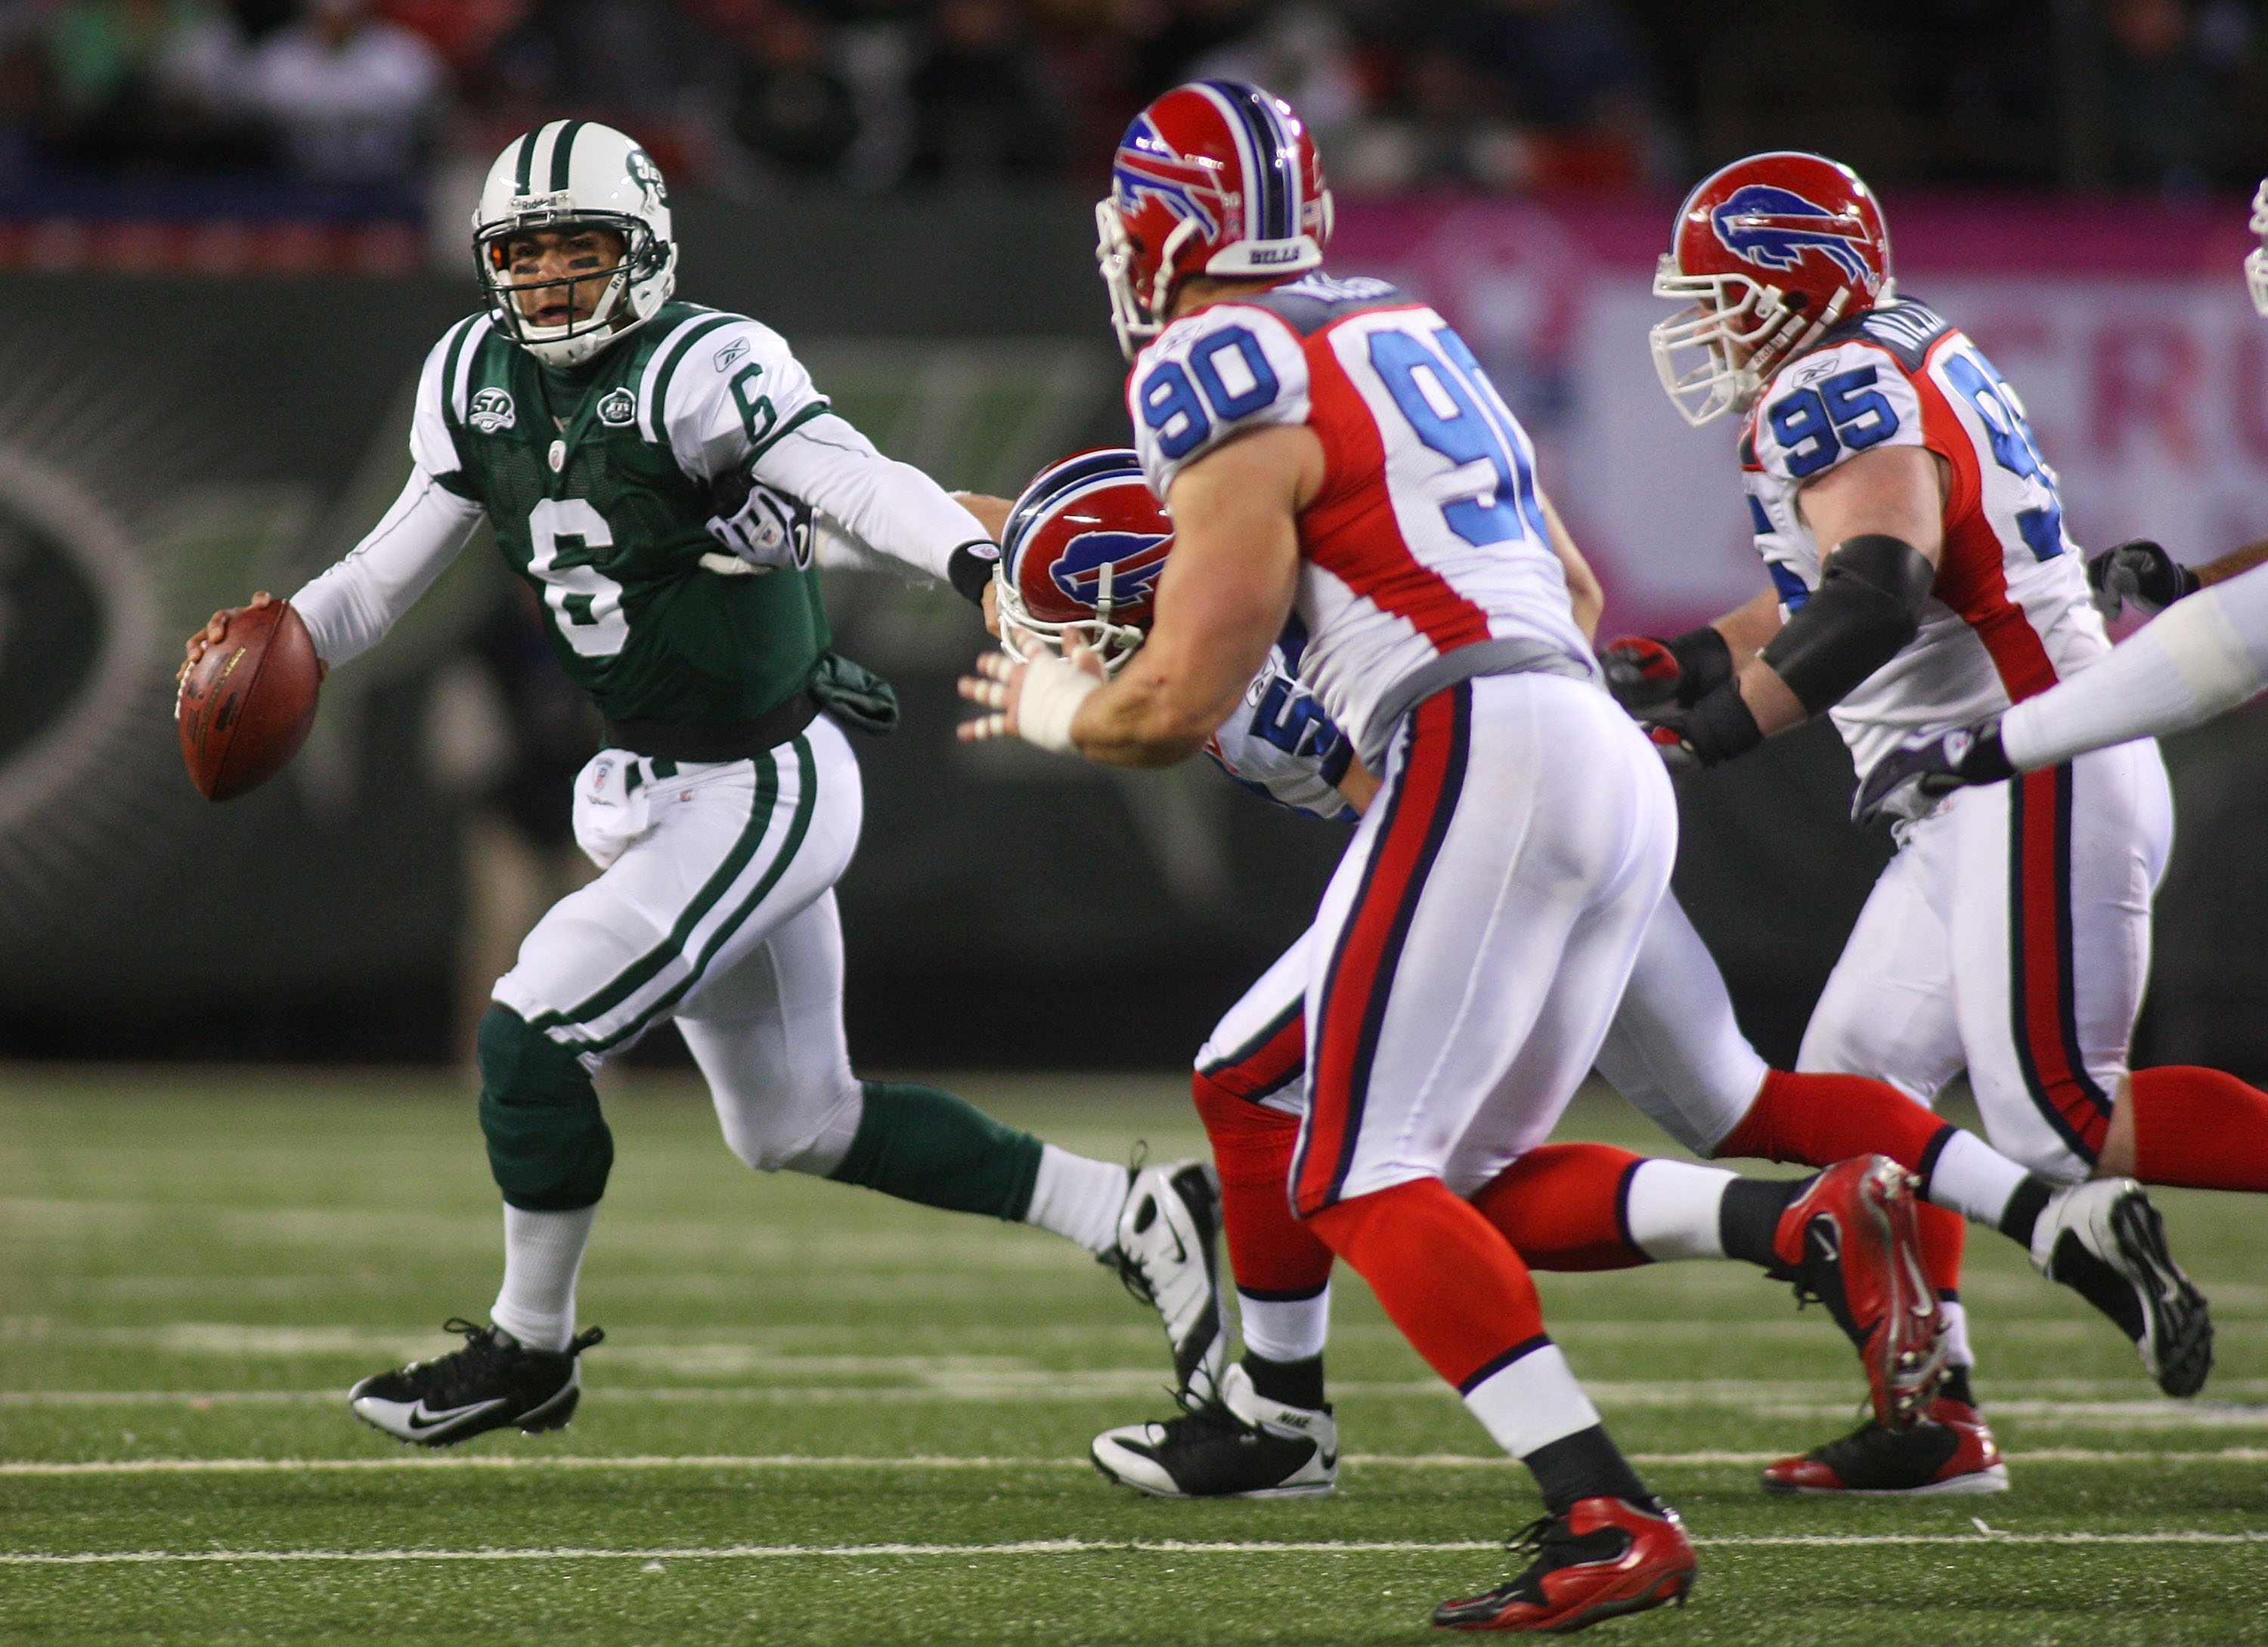 EAST RUTHERFORD, NJ - OCTOBER 18:  Ouaterback Mark Sanchez #6 of the New York Jets scrambles out of the pocket against the Buffalo Bills at Giants Stadium in the Meadowlands on October 18, 2009 in East Rutherford, New Jersey. The Bills defeated the Jets 1